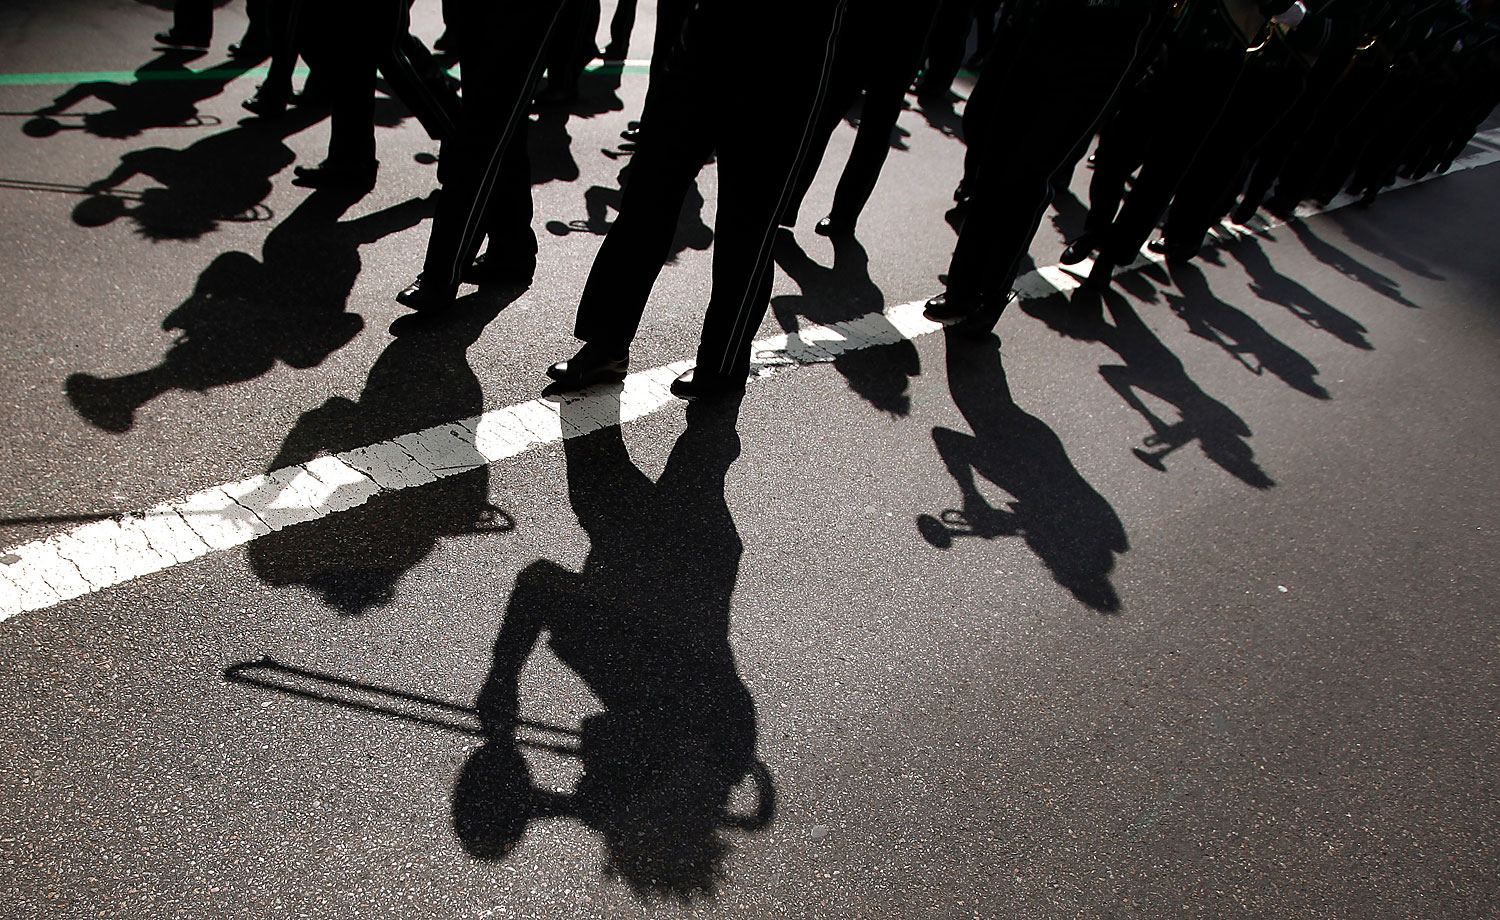 A marching band casts shadows on the road during the 251st annual St. Patrick's Day Parade in New York, March 17, 2012.